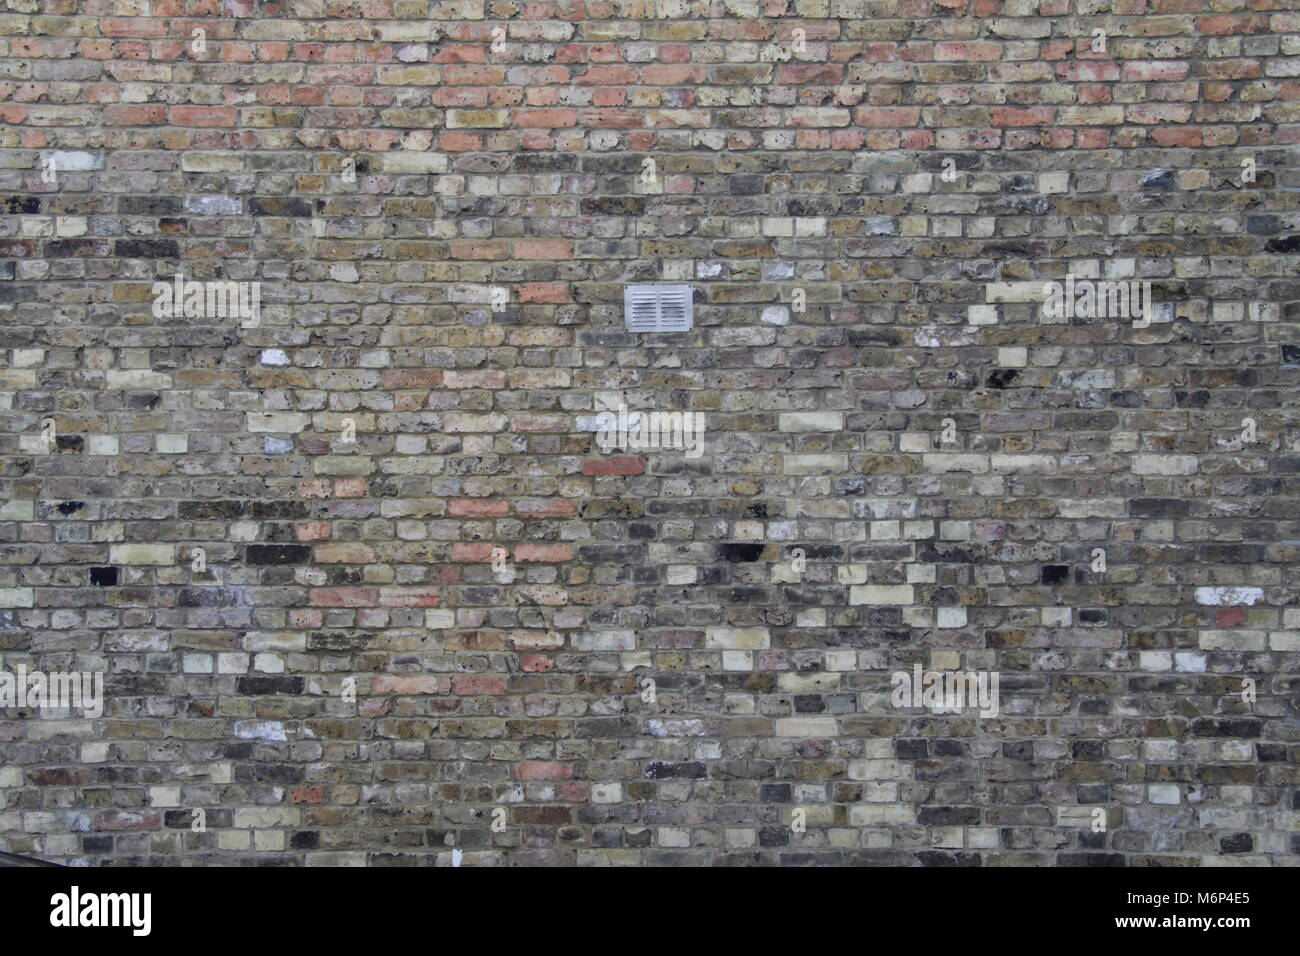 Brickwall background with T shape variance in brick type and small vent in middle, West London - Stock Image